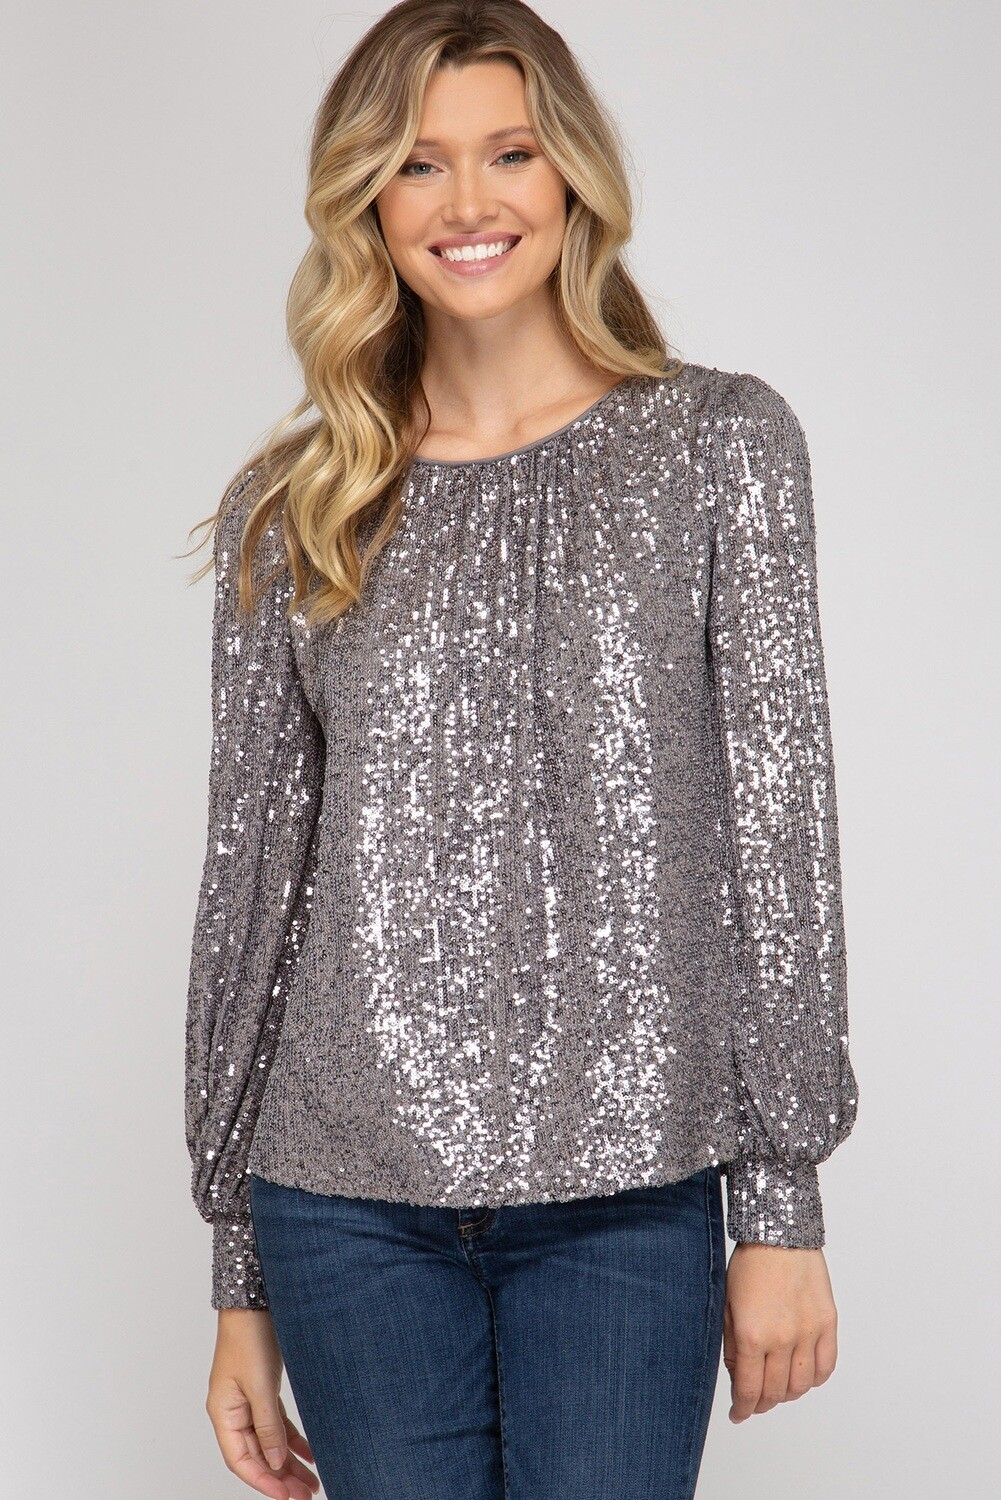 Own The Night Top